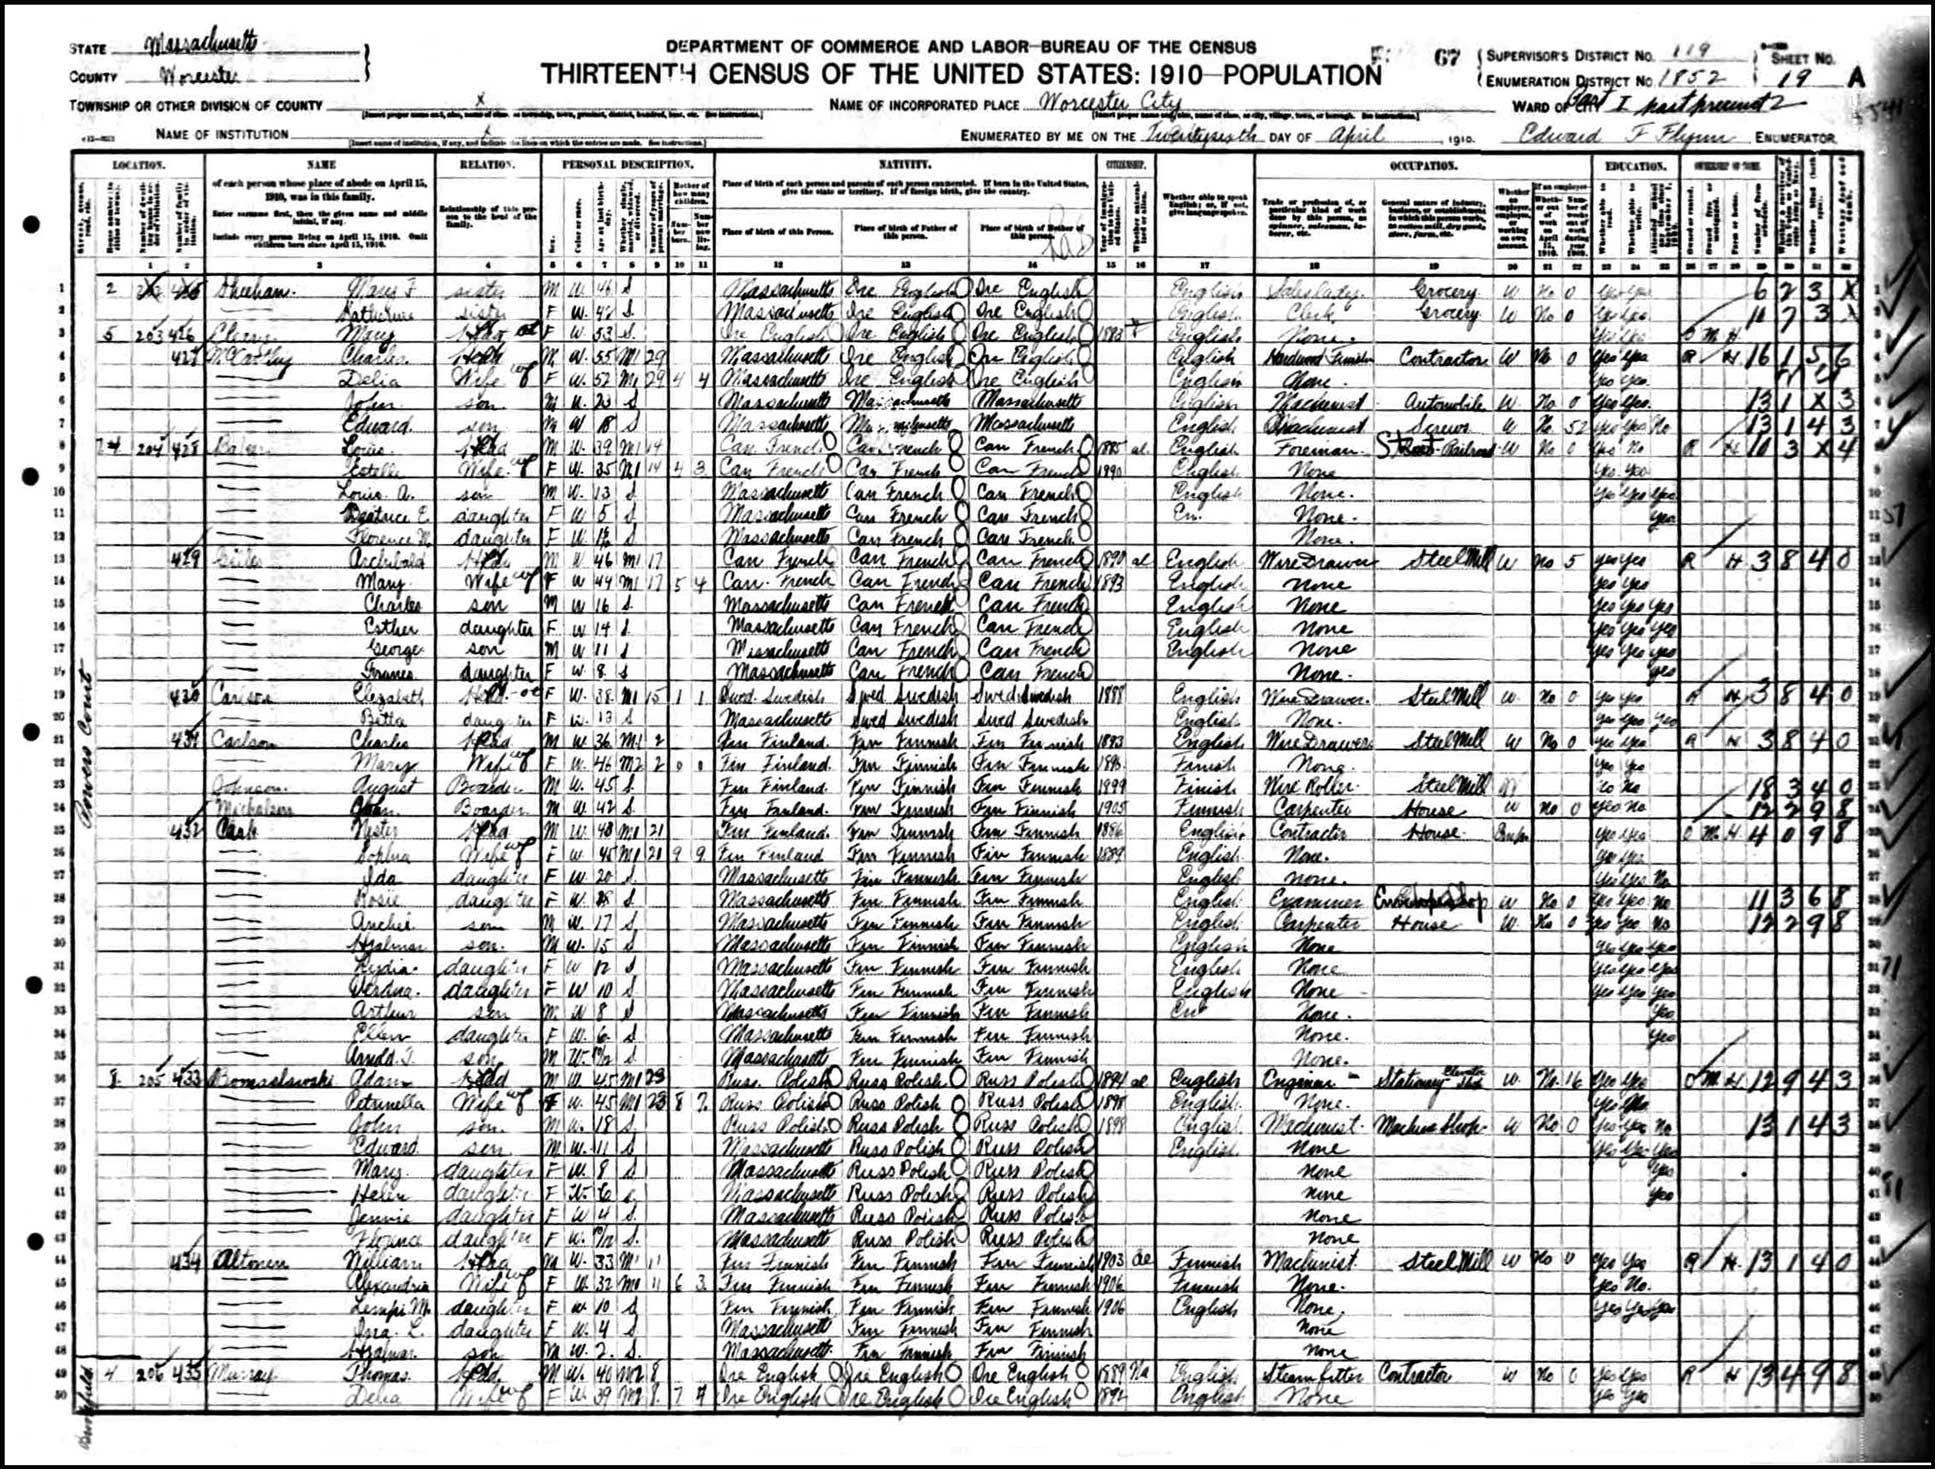 The 1910 US Federal Census Record for Adam Bonislawski